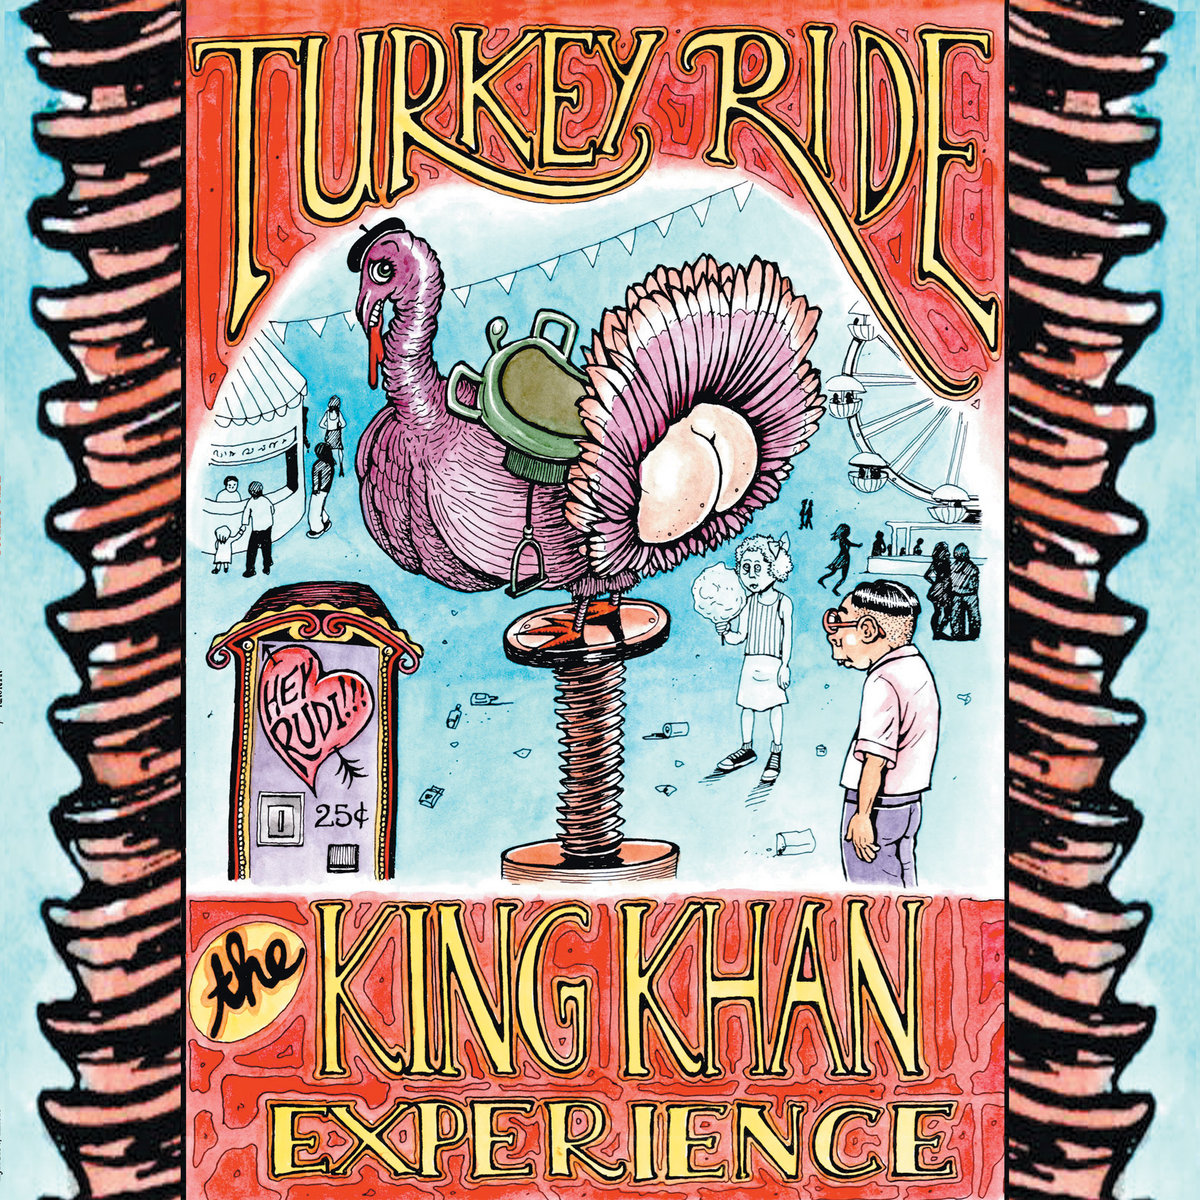 Turkey Ride | King Khan